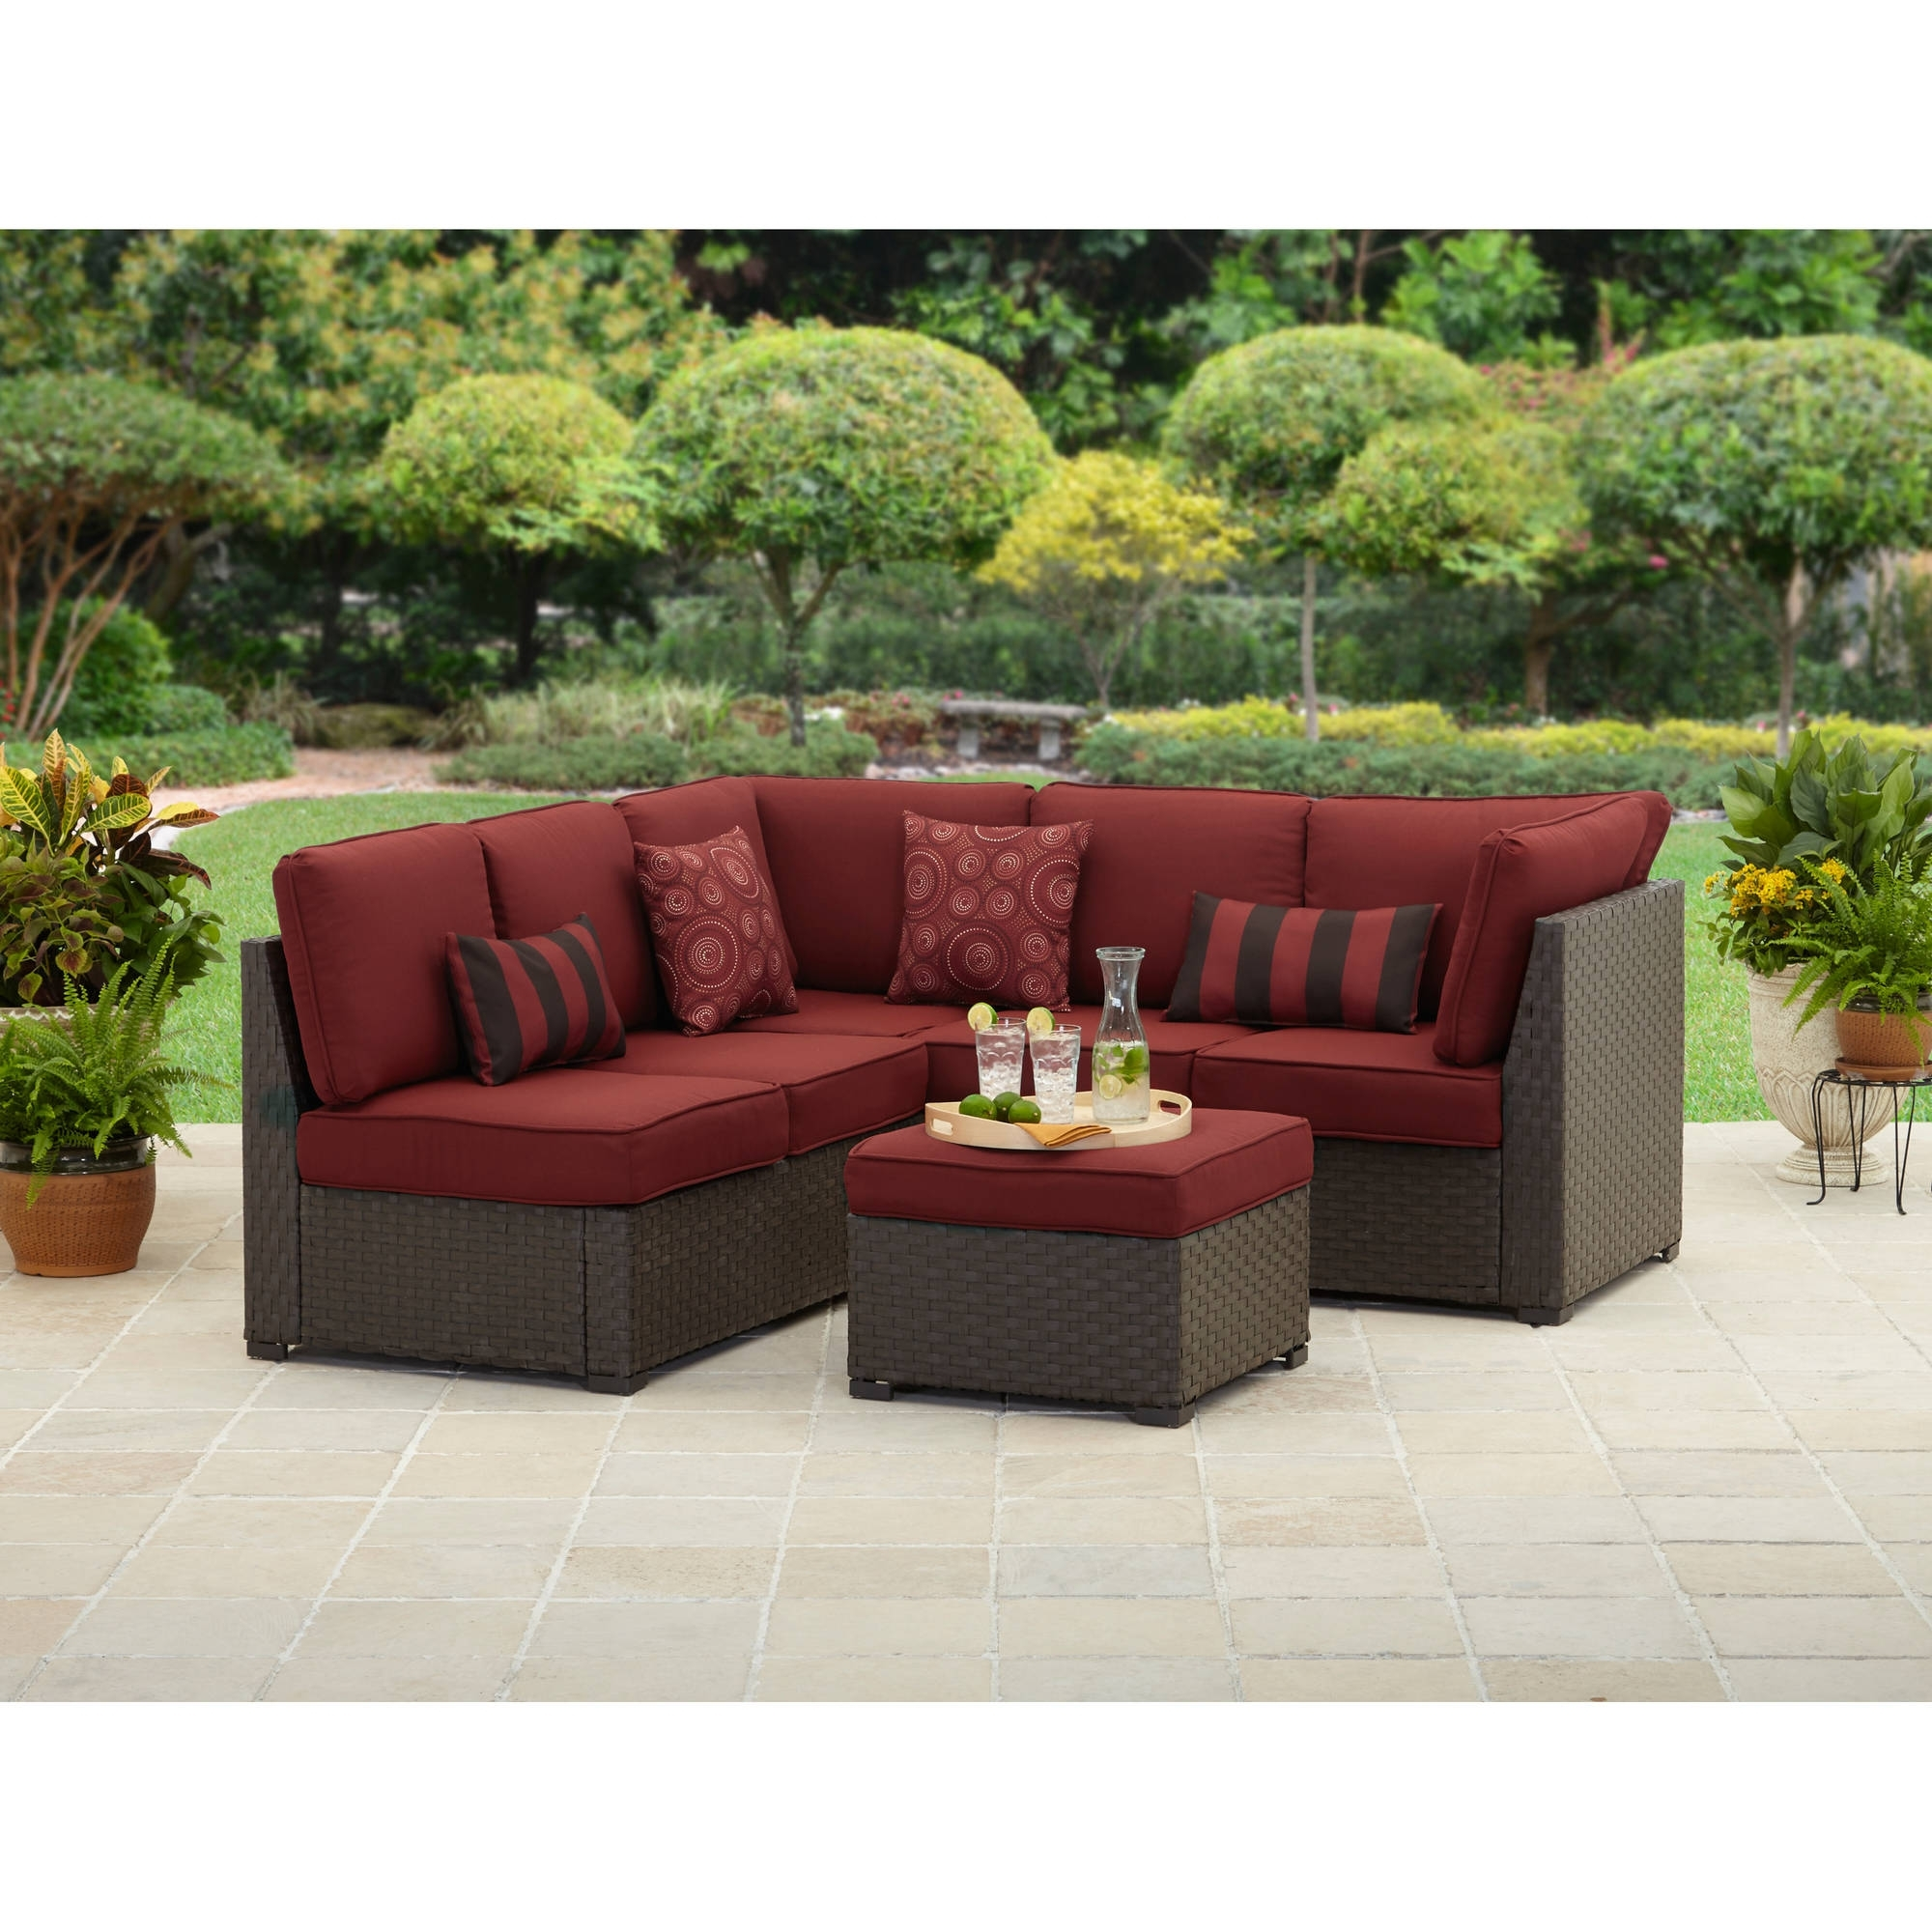 Better Homes And Gardens Rush Valley 3 Piece Outdoor Sectional Intended For Most Popular Patio Conversation Sets With Ottomans (View 1 of 15)